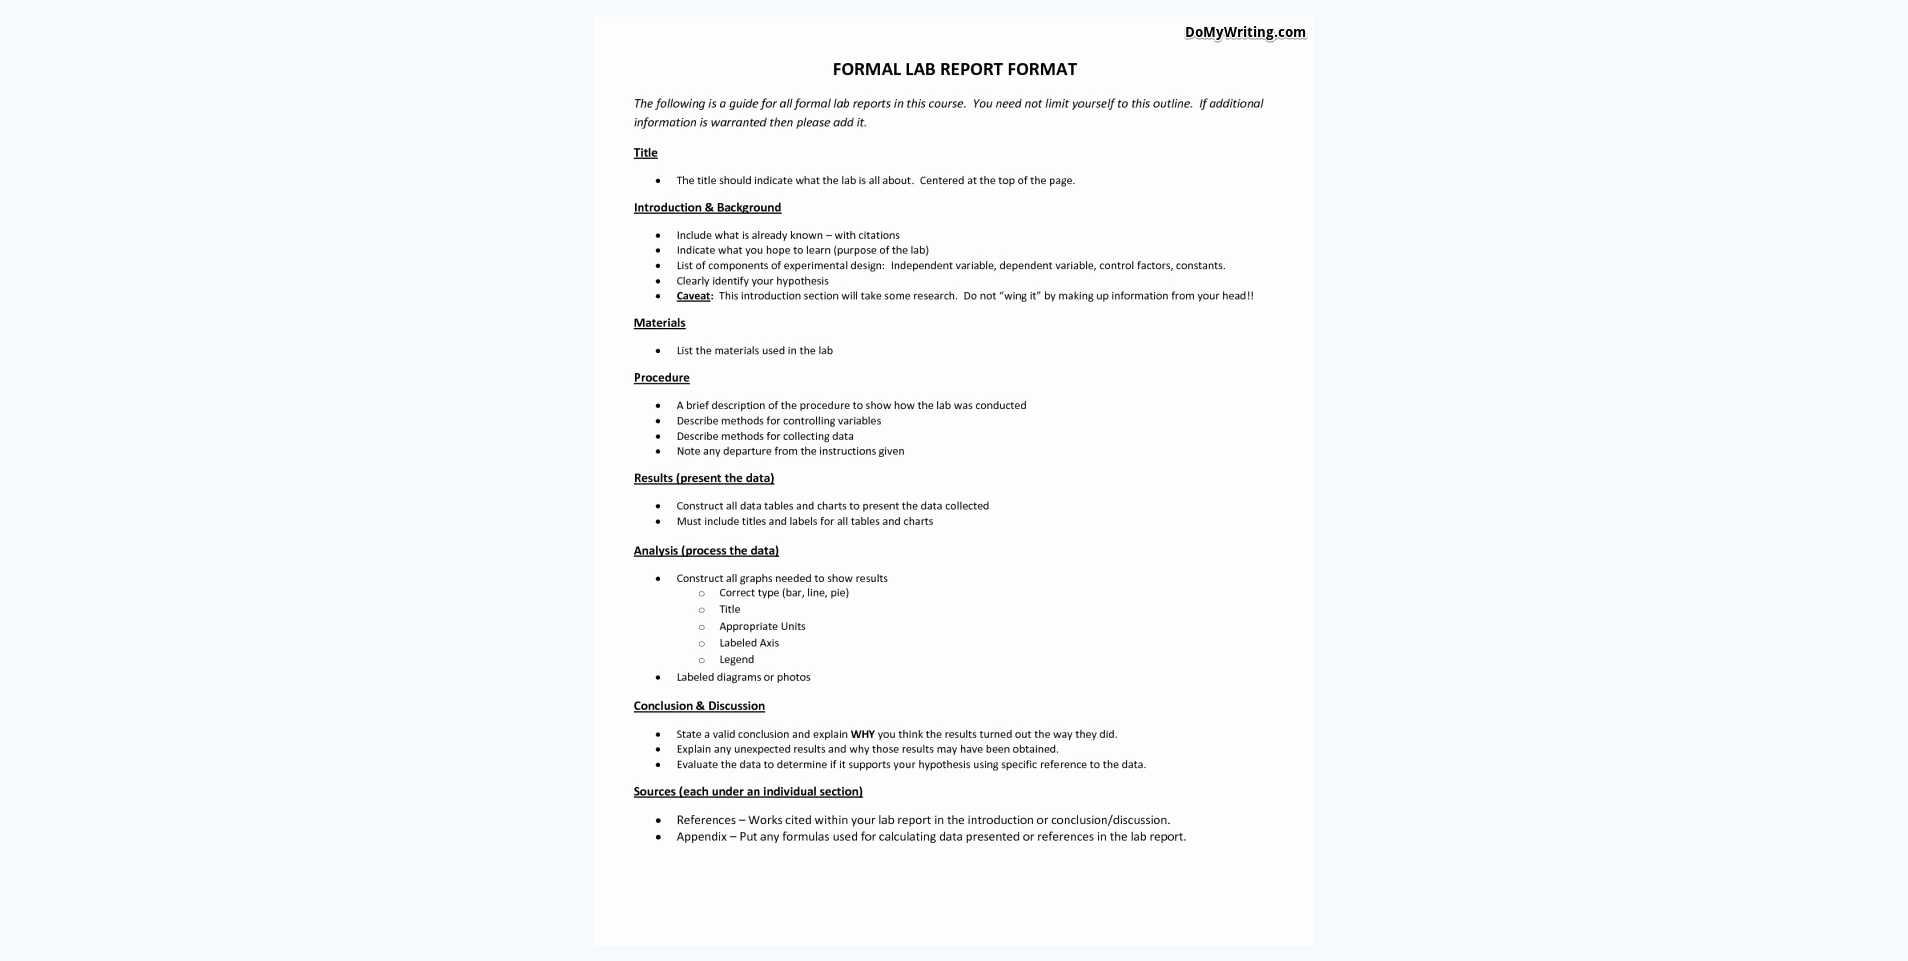 Lab Report Template Middle School Elegant Writing A Lab Report Everything A Student Should Know to